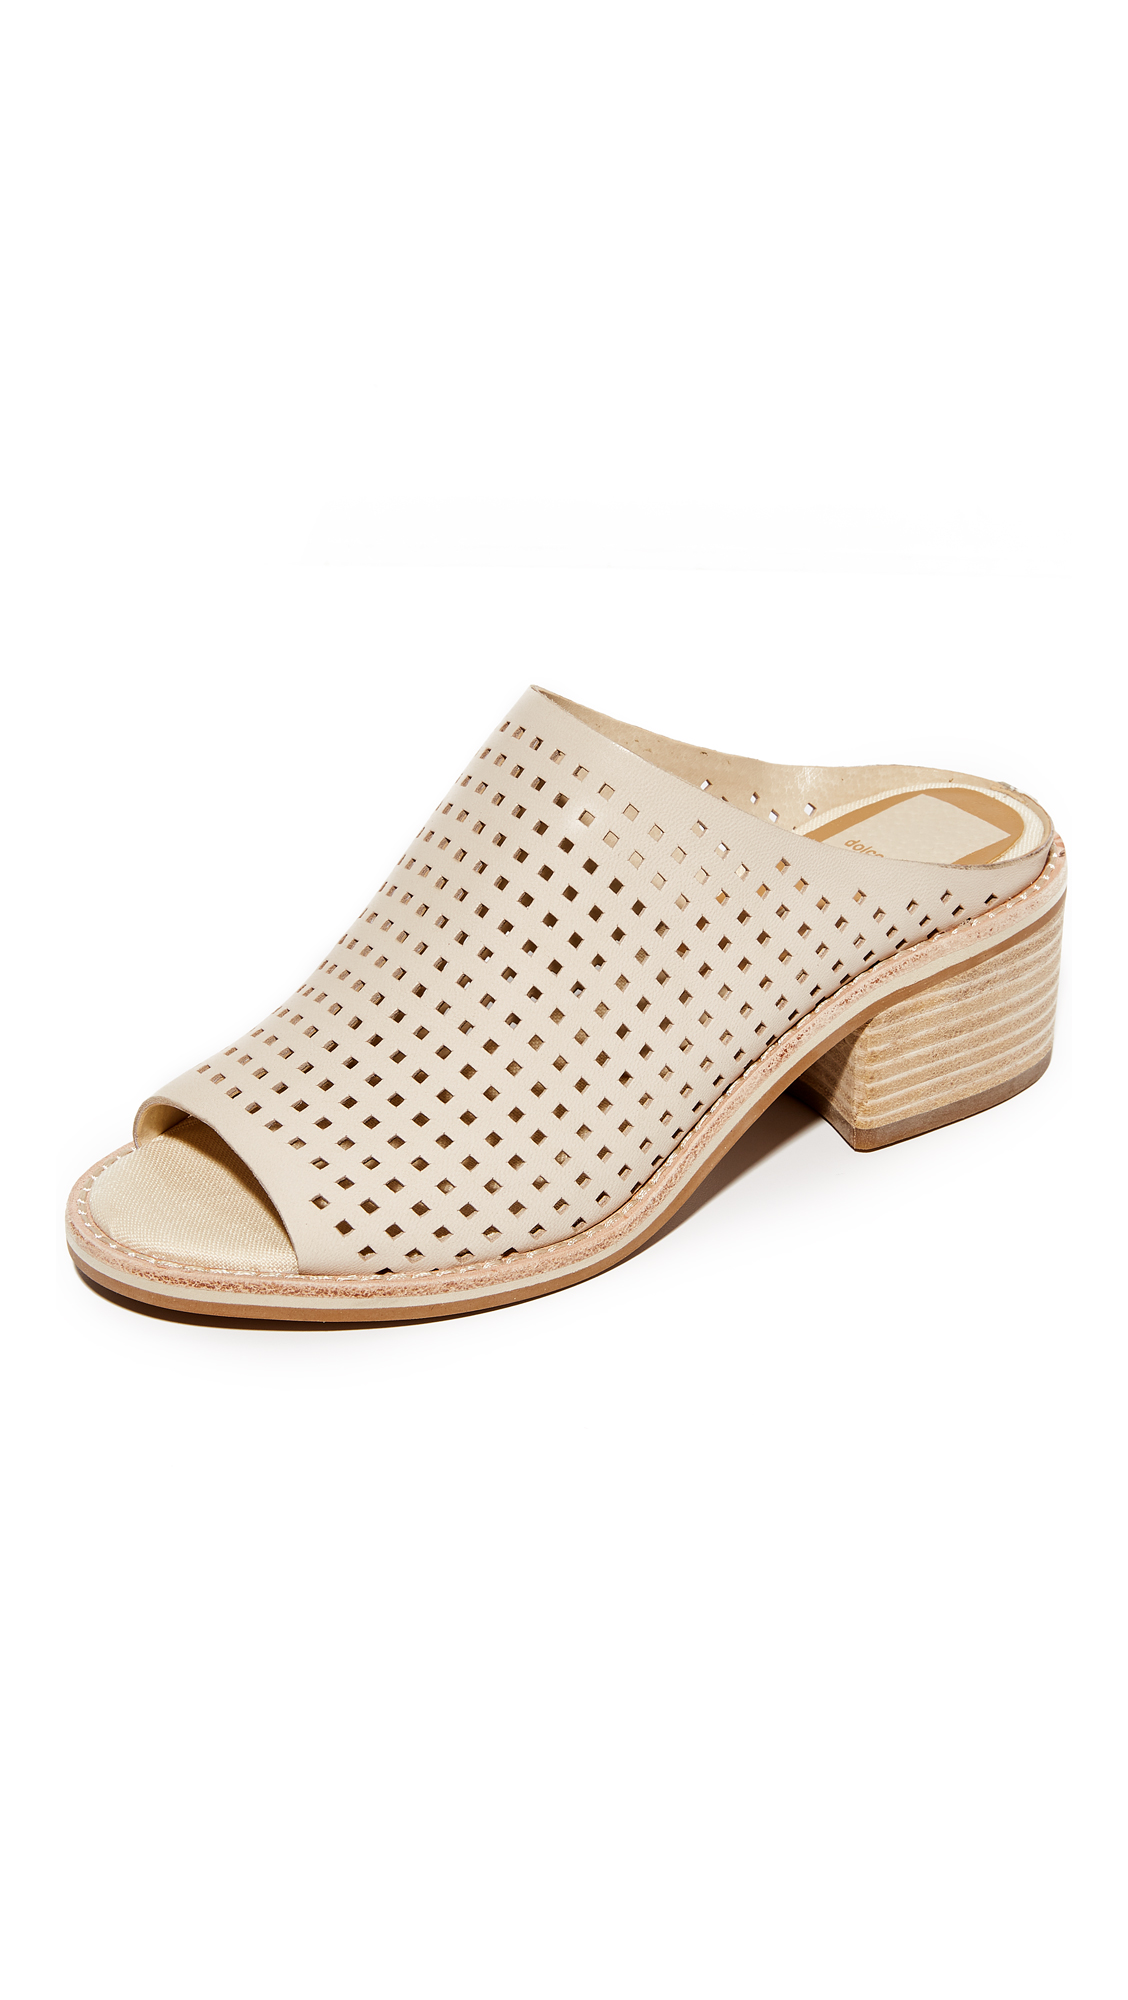 Photo of Dolce Vita Kyla Perforated Mules Off White - Dolce Vita online